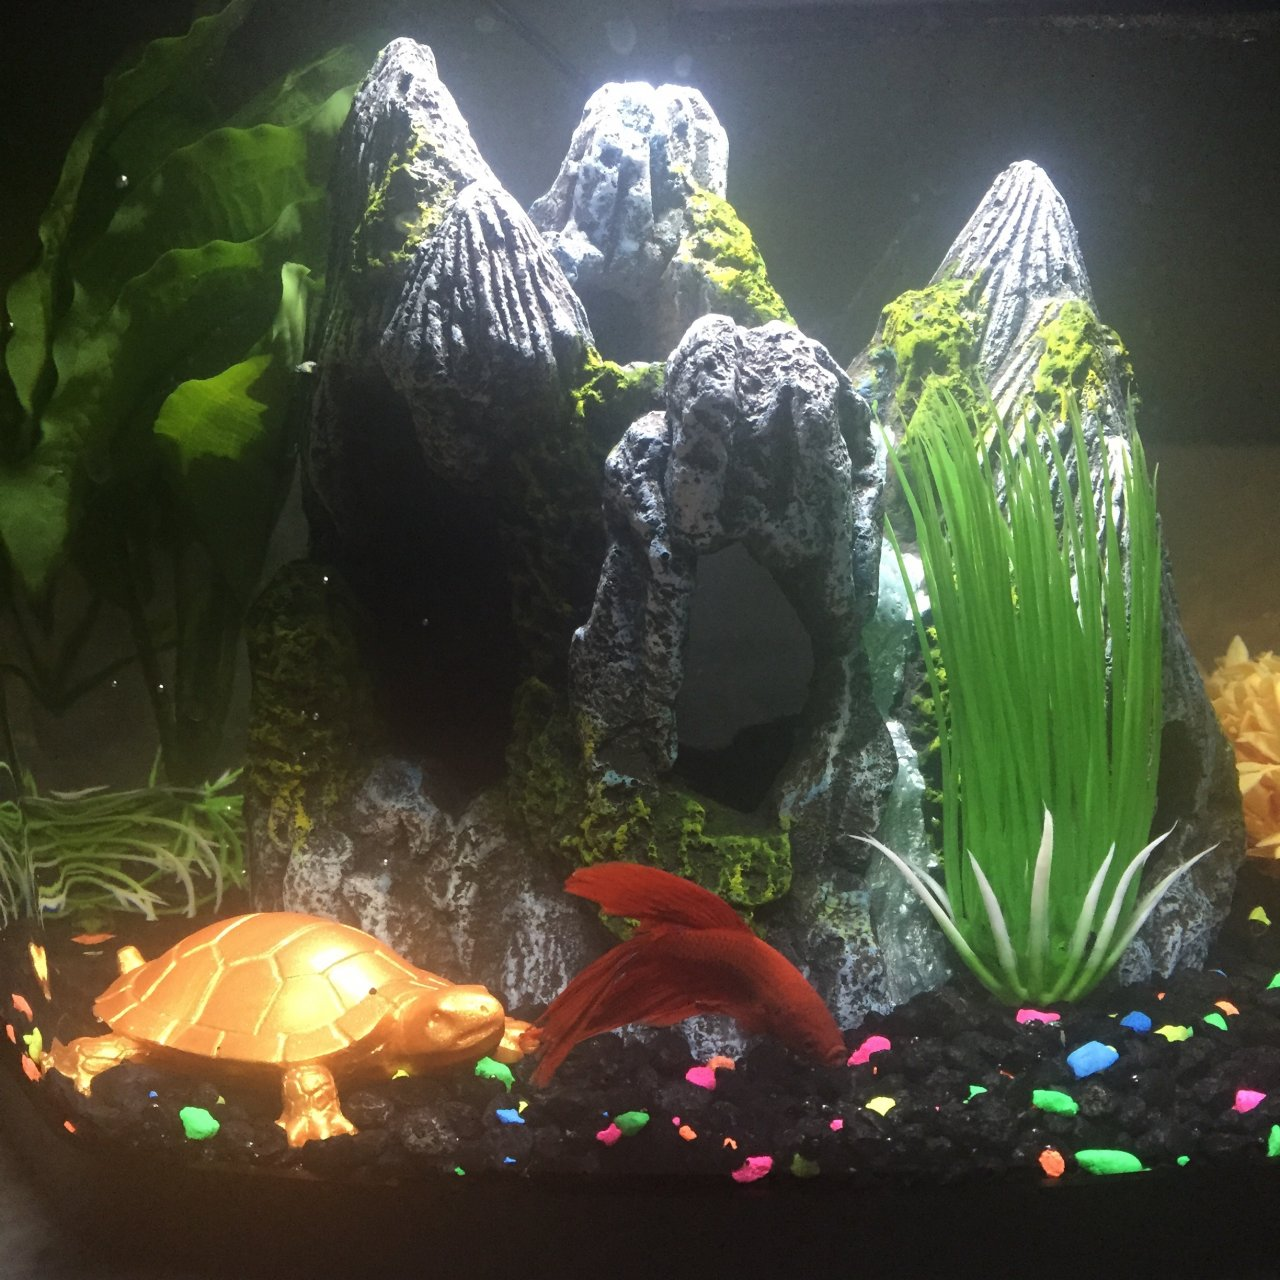 Fish for uncycled tank - I Heard That 25 Water Changes Every Other Day Might Help But I M Not 100 Sure I M Not Gonna Add Any Other Fish Anytime Soon Please Help